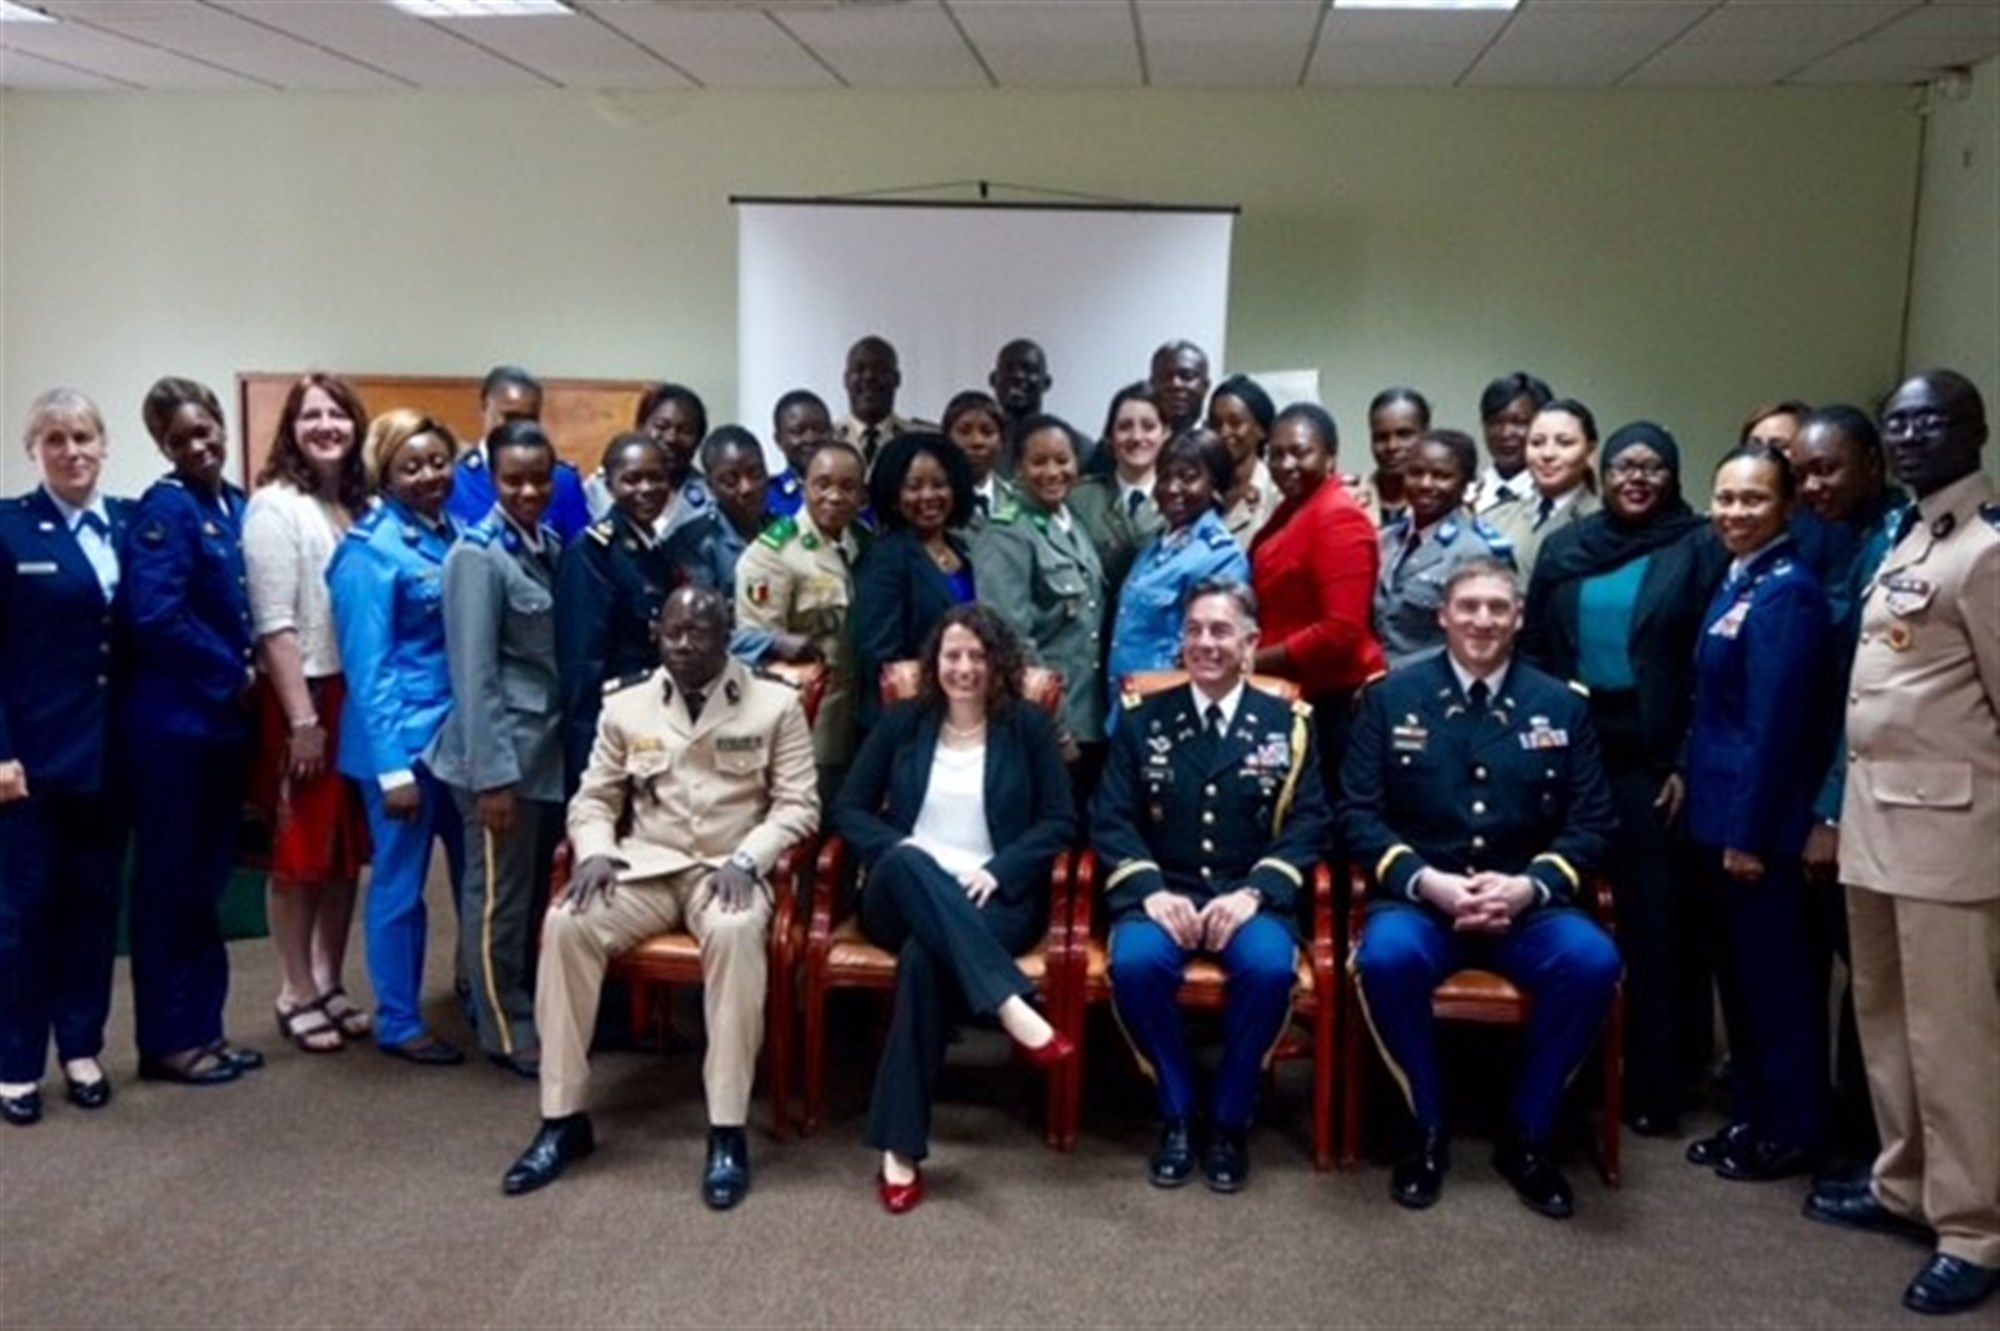 Students and instructors from the U.S. Africa Command's Intelligence Directorate (J2) regional all-female Military Intelligence Professionals Course pose for a group photo during the course graduation.